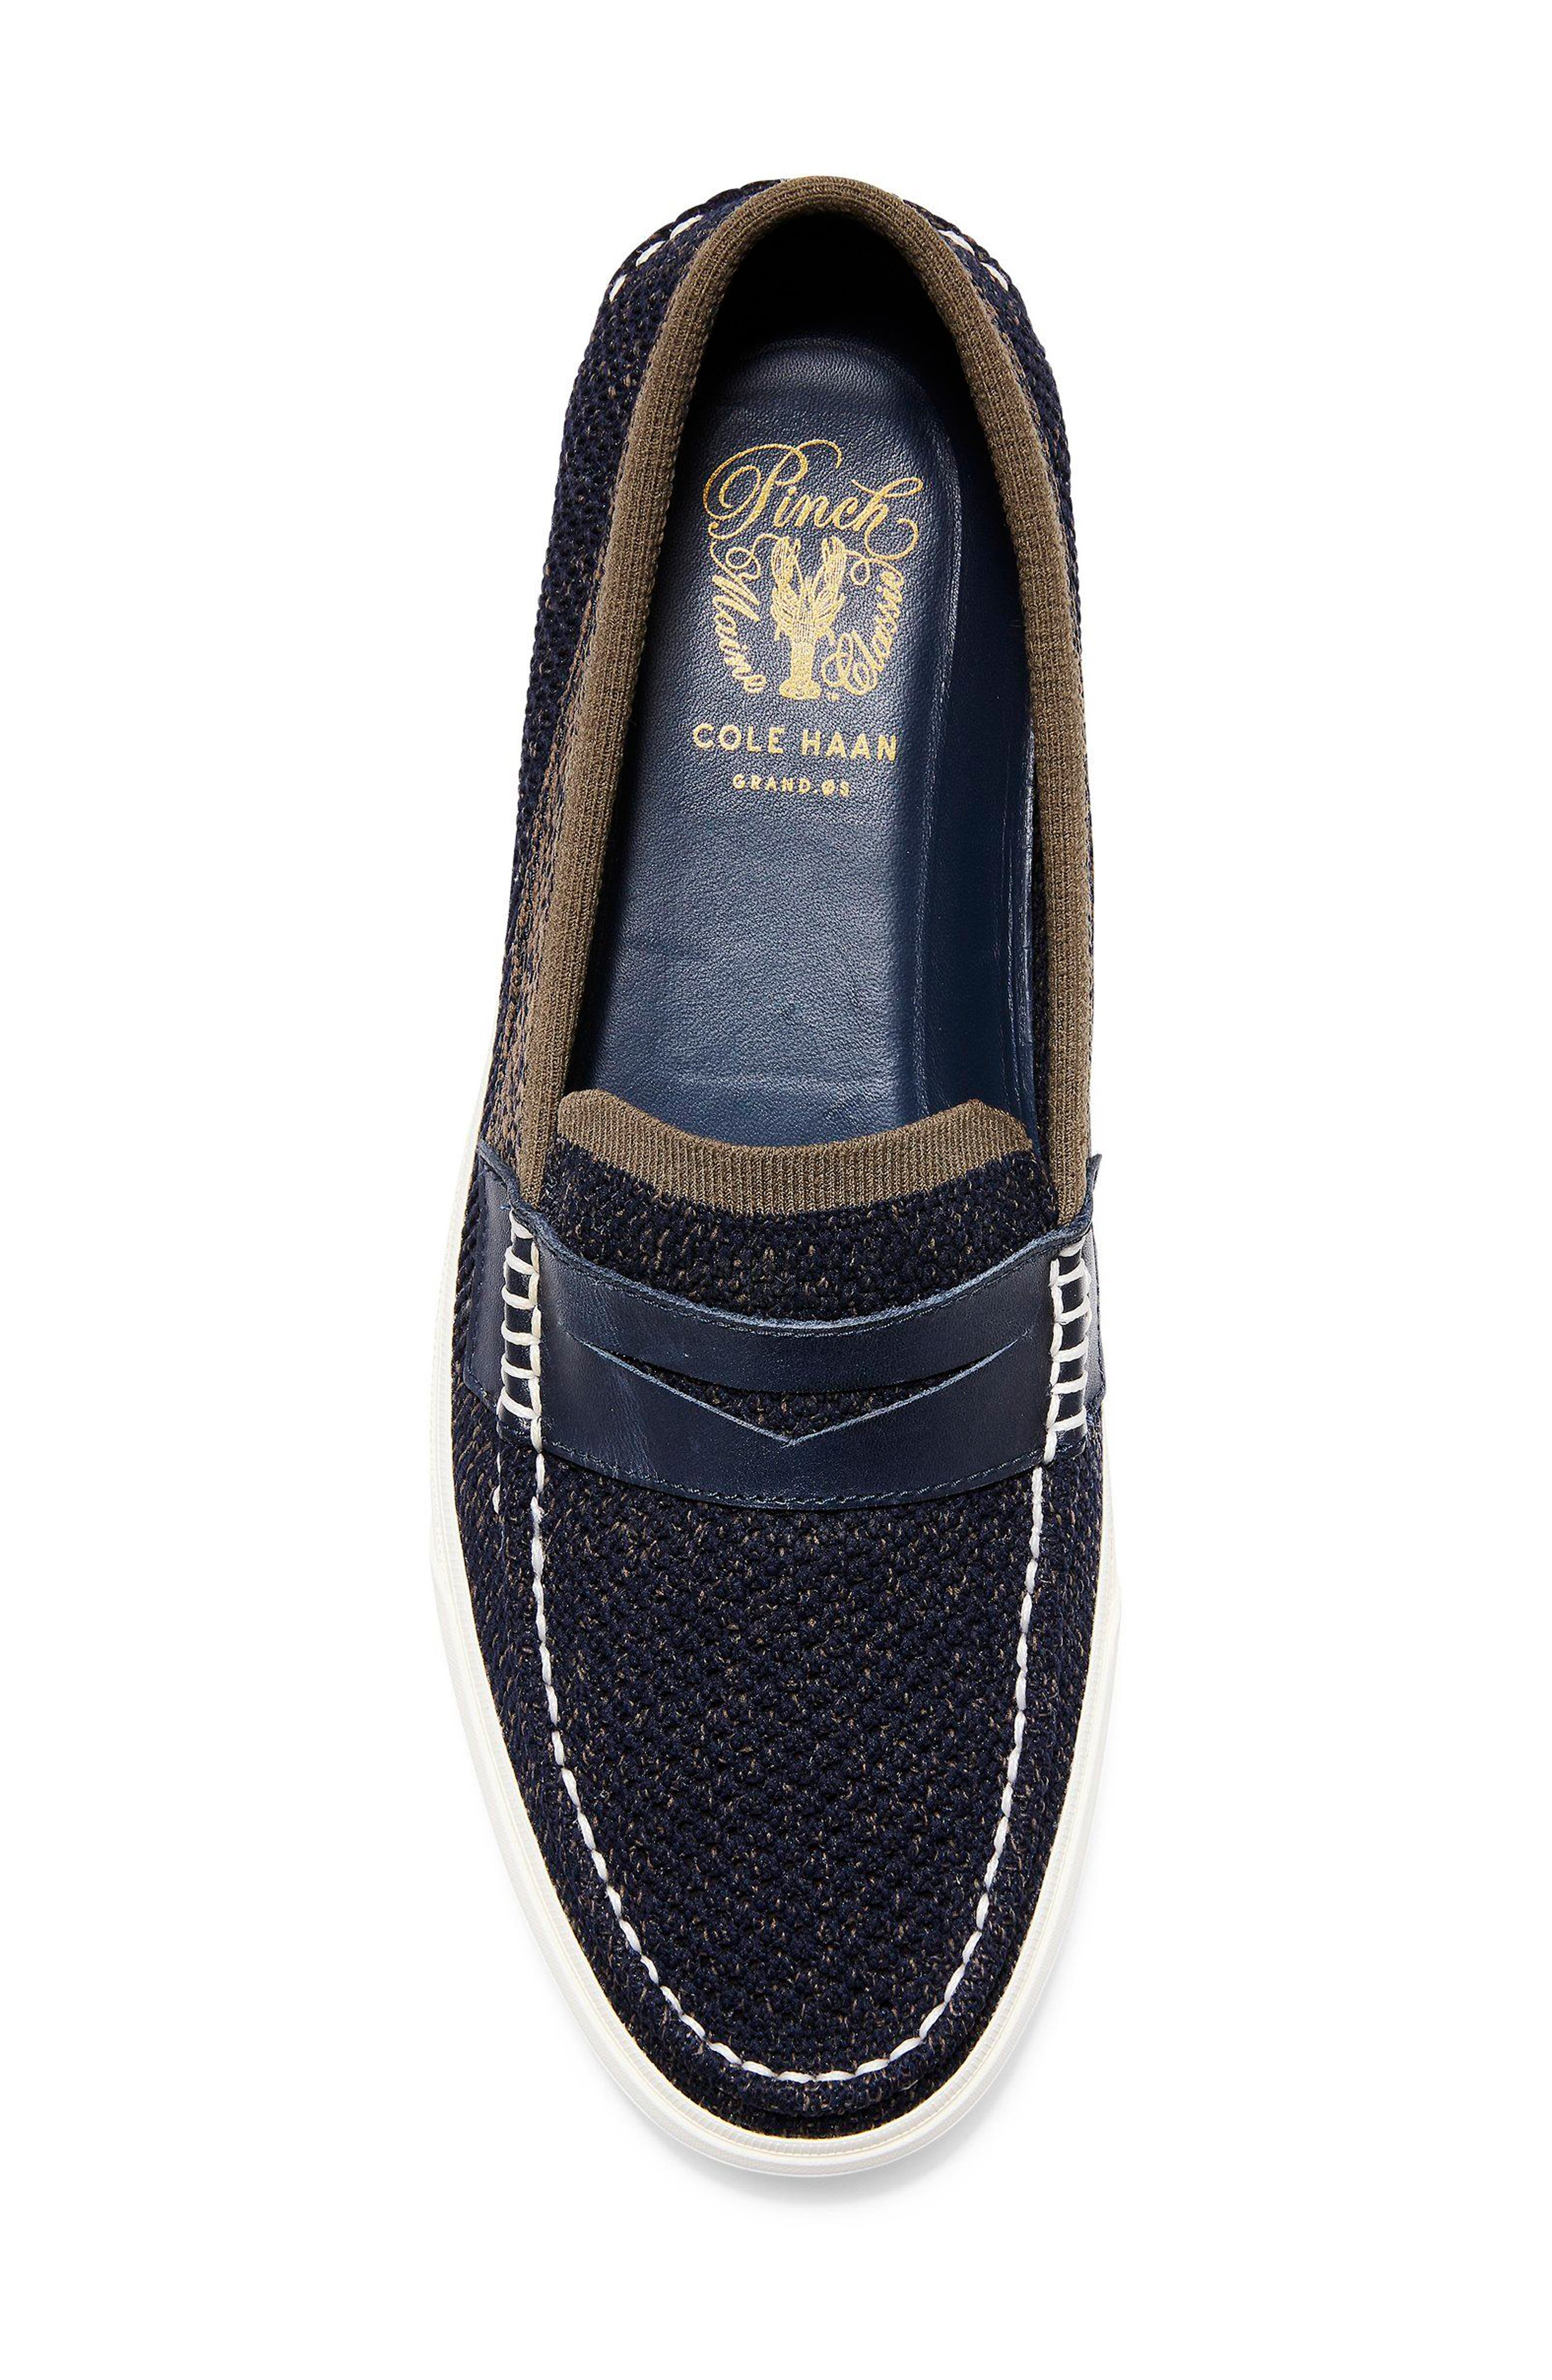 Pinch Stitch LX Stitchlite<sup>™</sup> Penny Loafer,                             Alternate thumbnail 5, color,                             NAVY/ MOREL